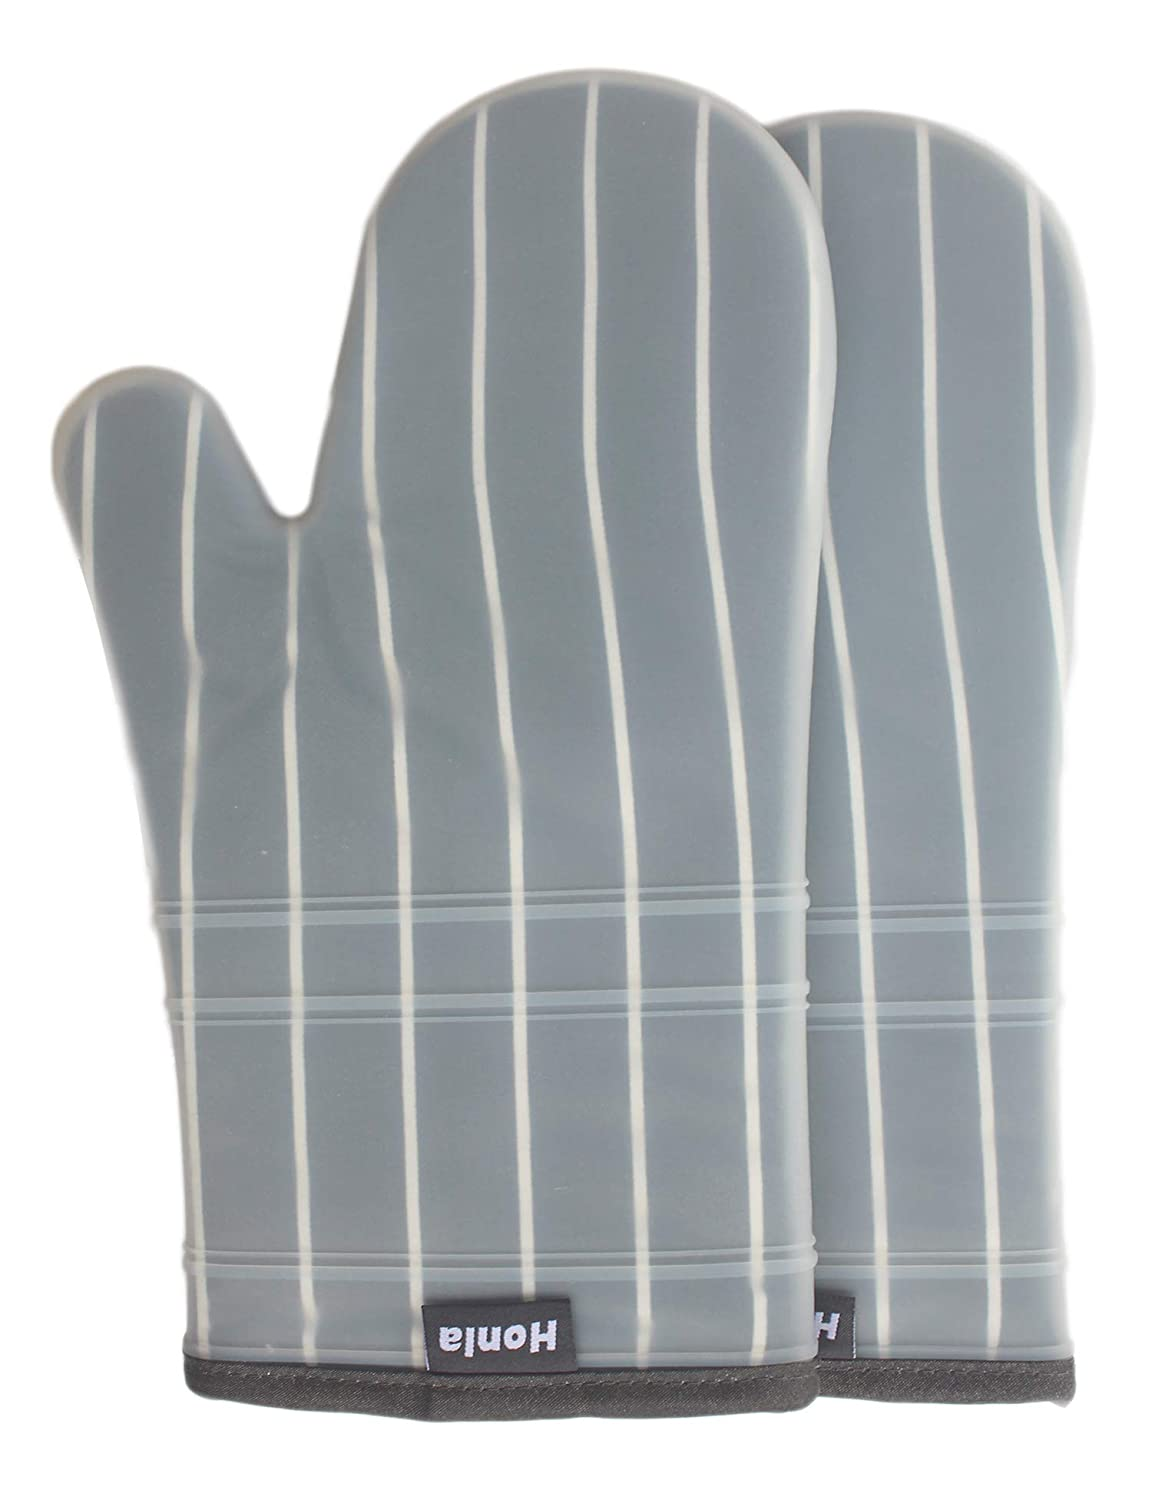 Honla Silicone Oven Mitts with Stripe Fabric and Terry Cloths Lining - Heat Resistant to 500° F,1 Pair of Kitchen Oven Gloves for Cooking,Baking,Grilling,Barbecue Potholders,Gray